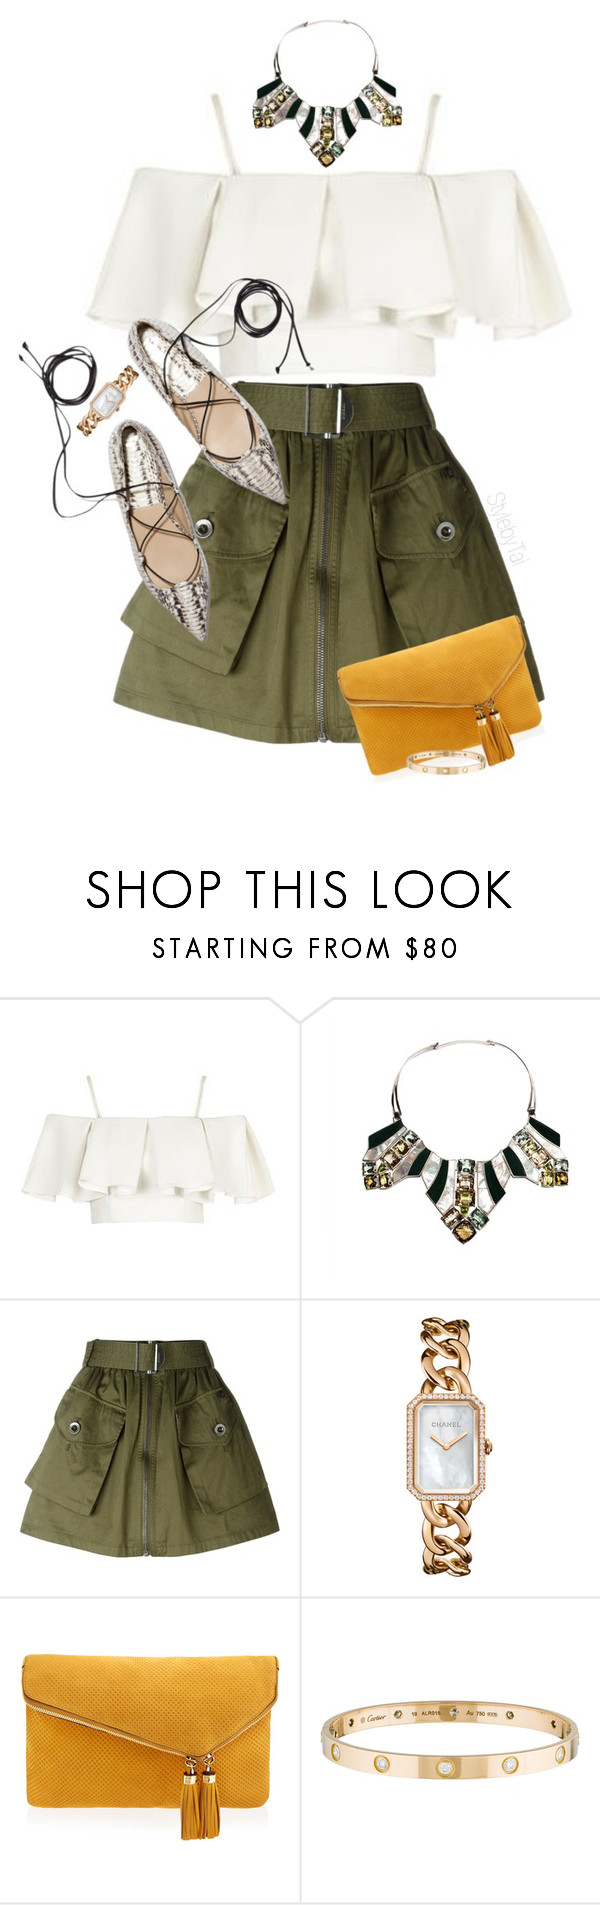 """Untitled #120"" by stylebytai ❤ liked on Polyvore featuring Topshop, Isabel Englebert, Diesel, Chanel, Henri Bendel and Cartier"